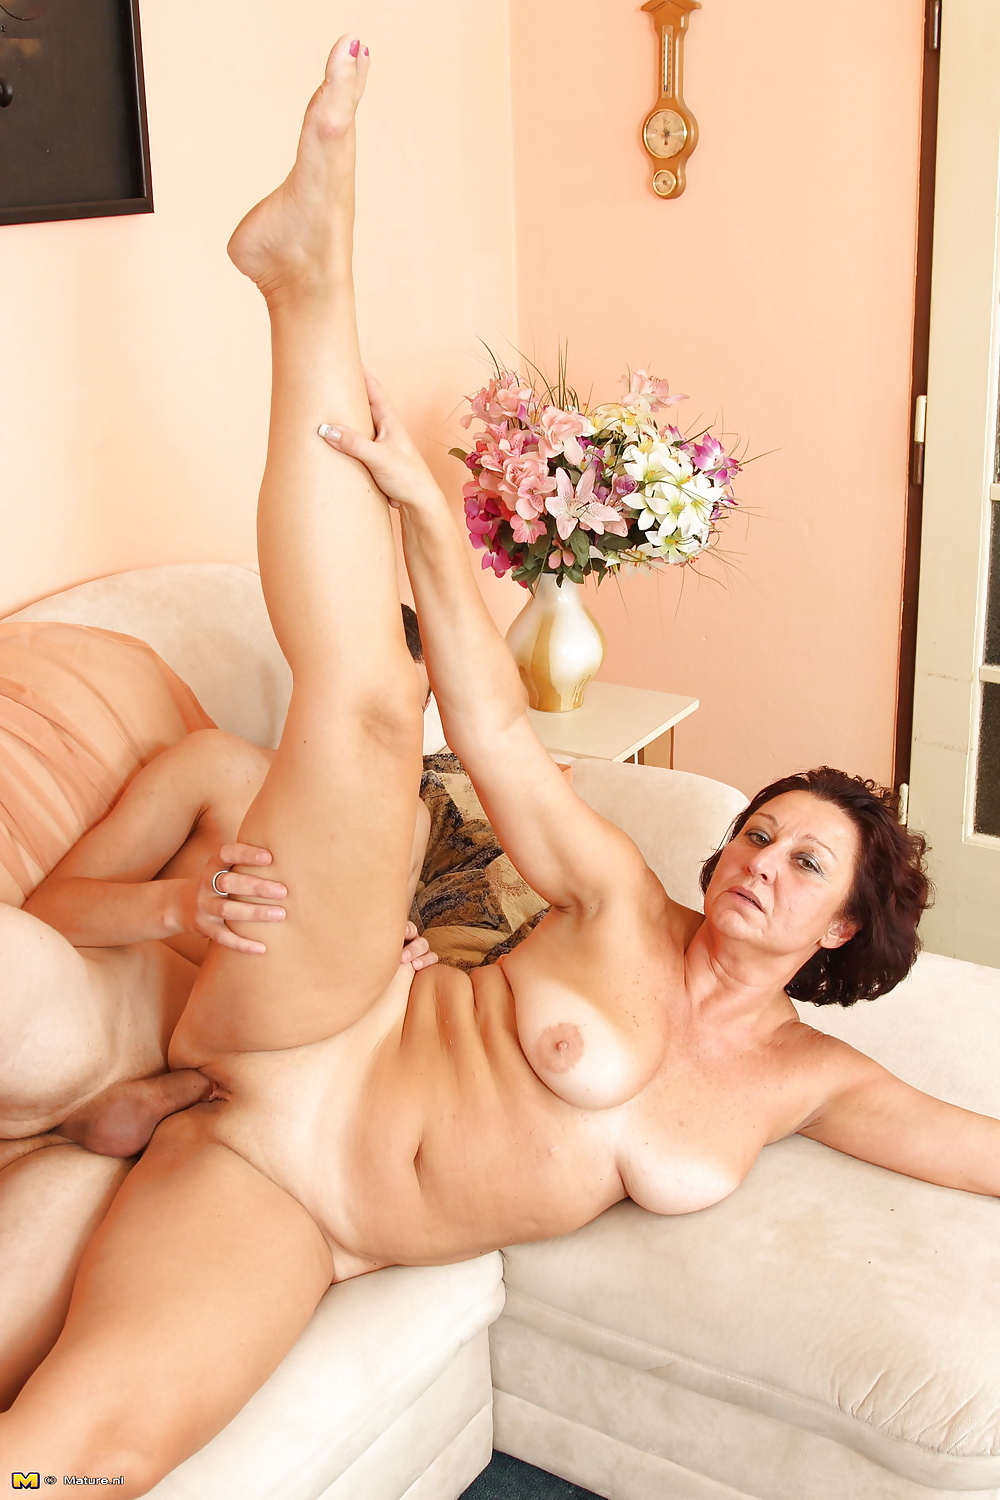 Mature women slut galleries humiliation spank